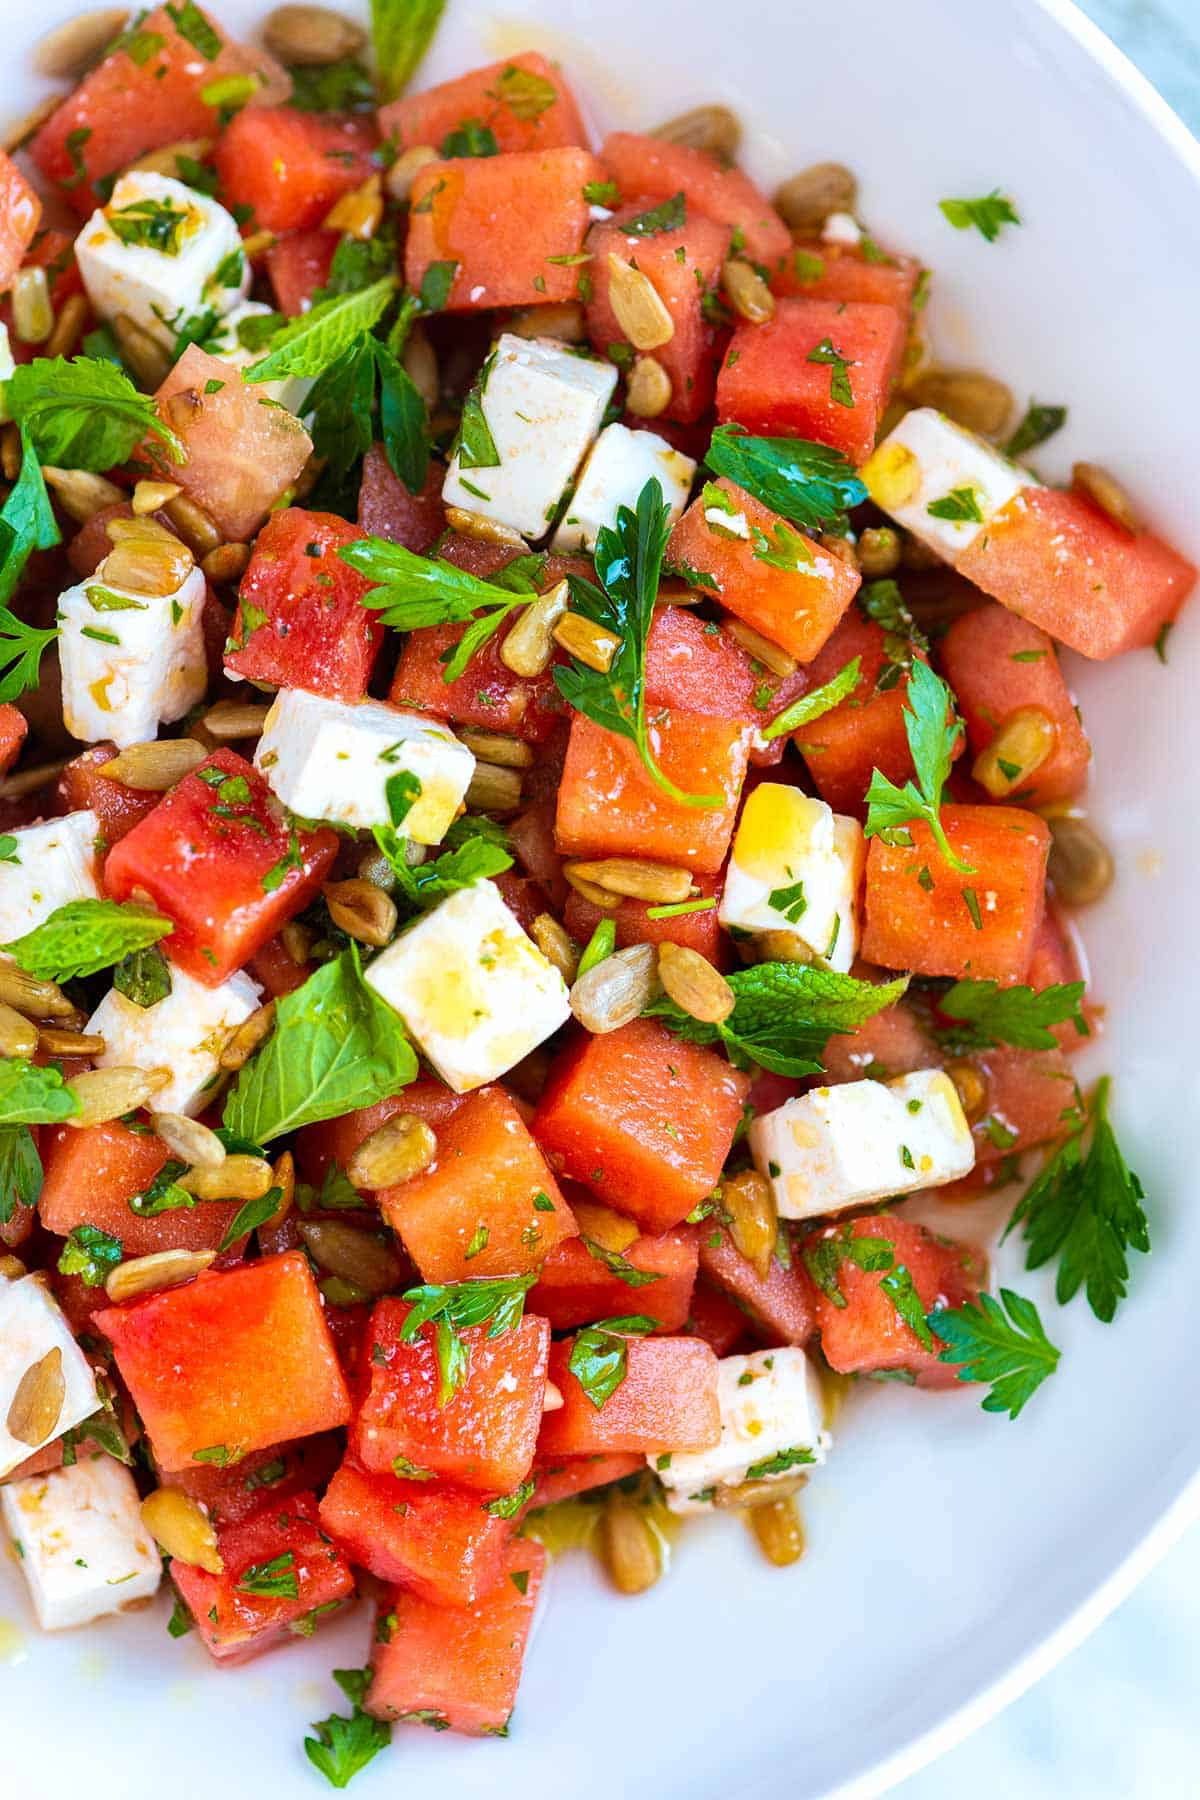 Watermelon Salad with Feta Cheese